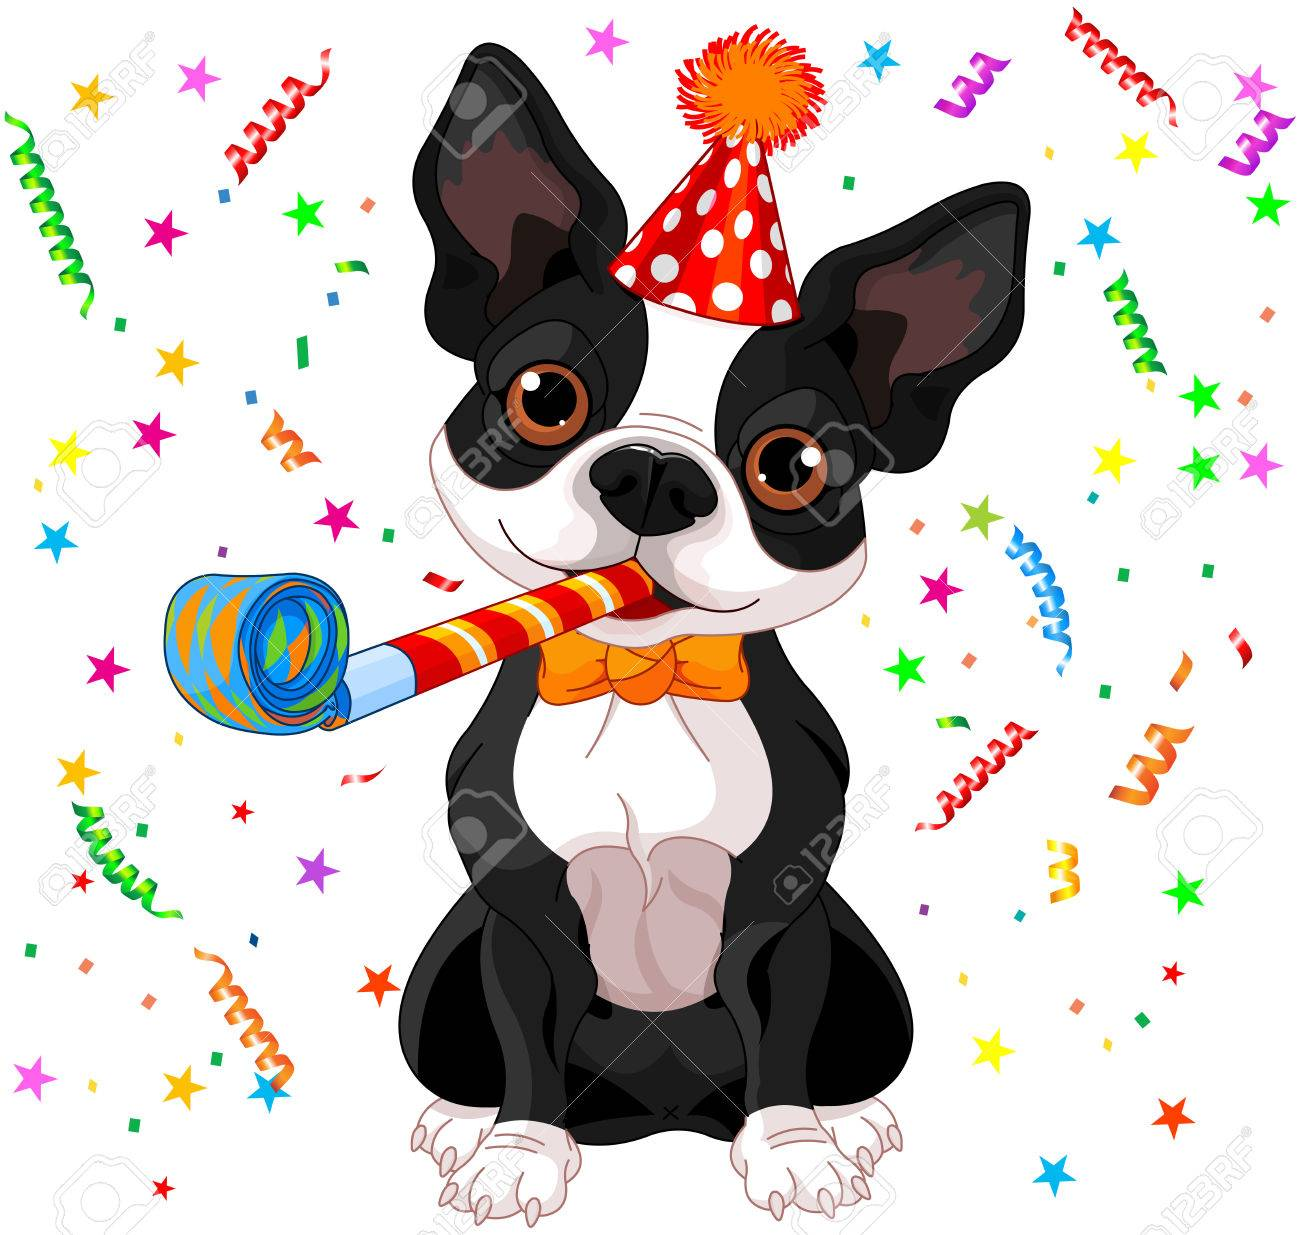 - Neva, jeune border collie ADOPTÉE   35588778-illustration-of-cute-boston-terrier-celebrating